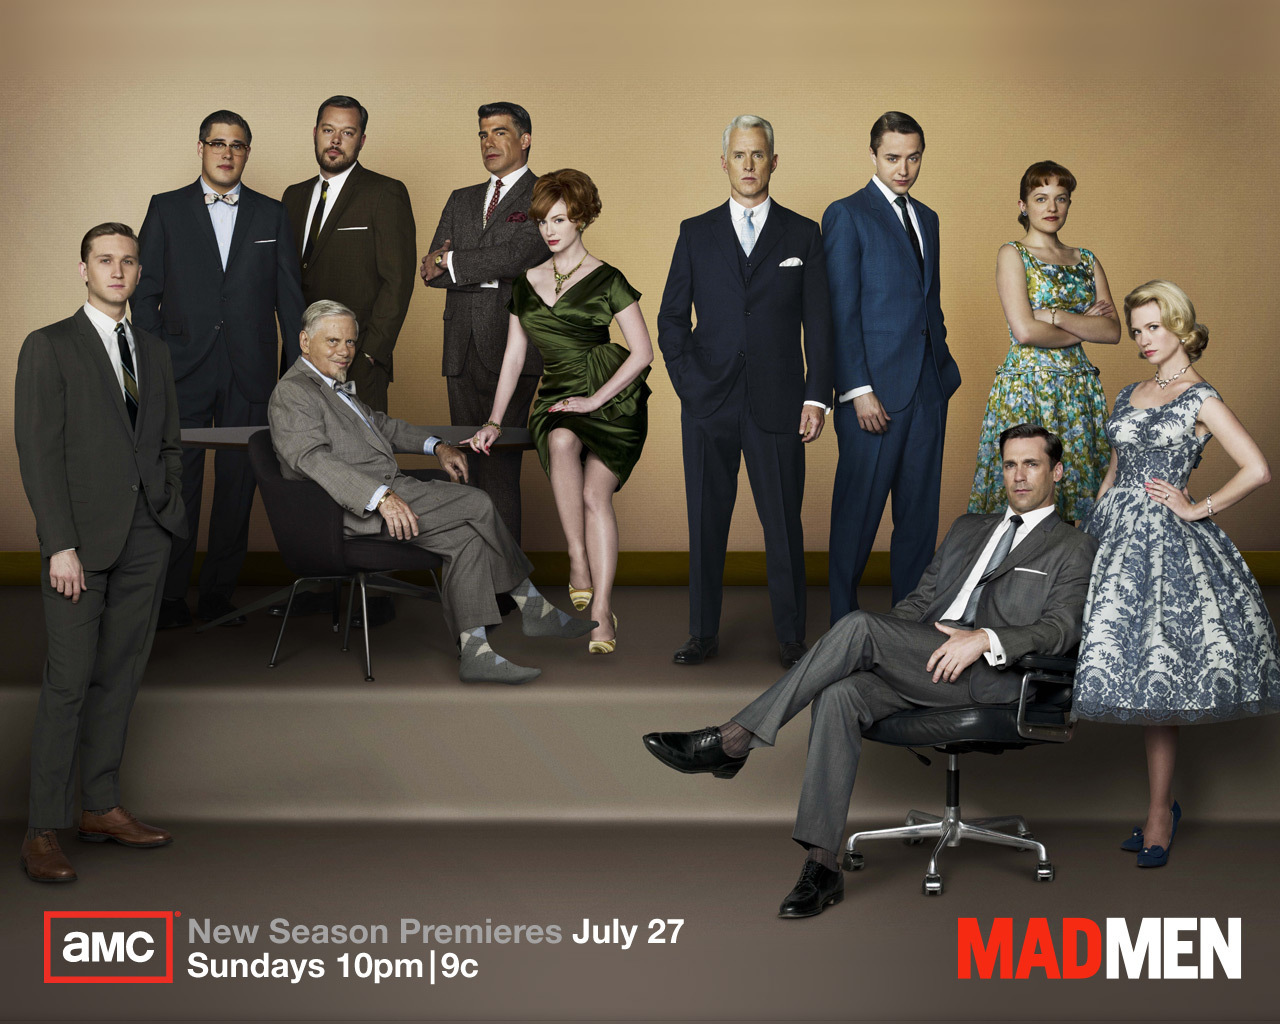 MM cast wallpaper Season 2 - Mad Men Wallpaper (2255260) - Fanpop